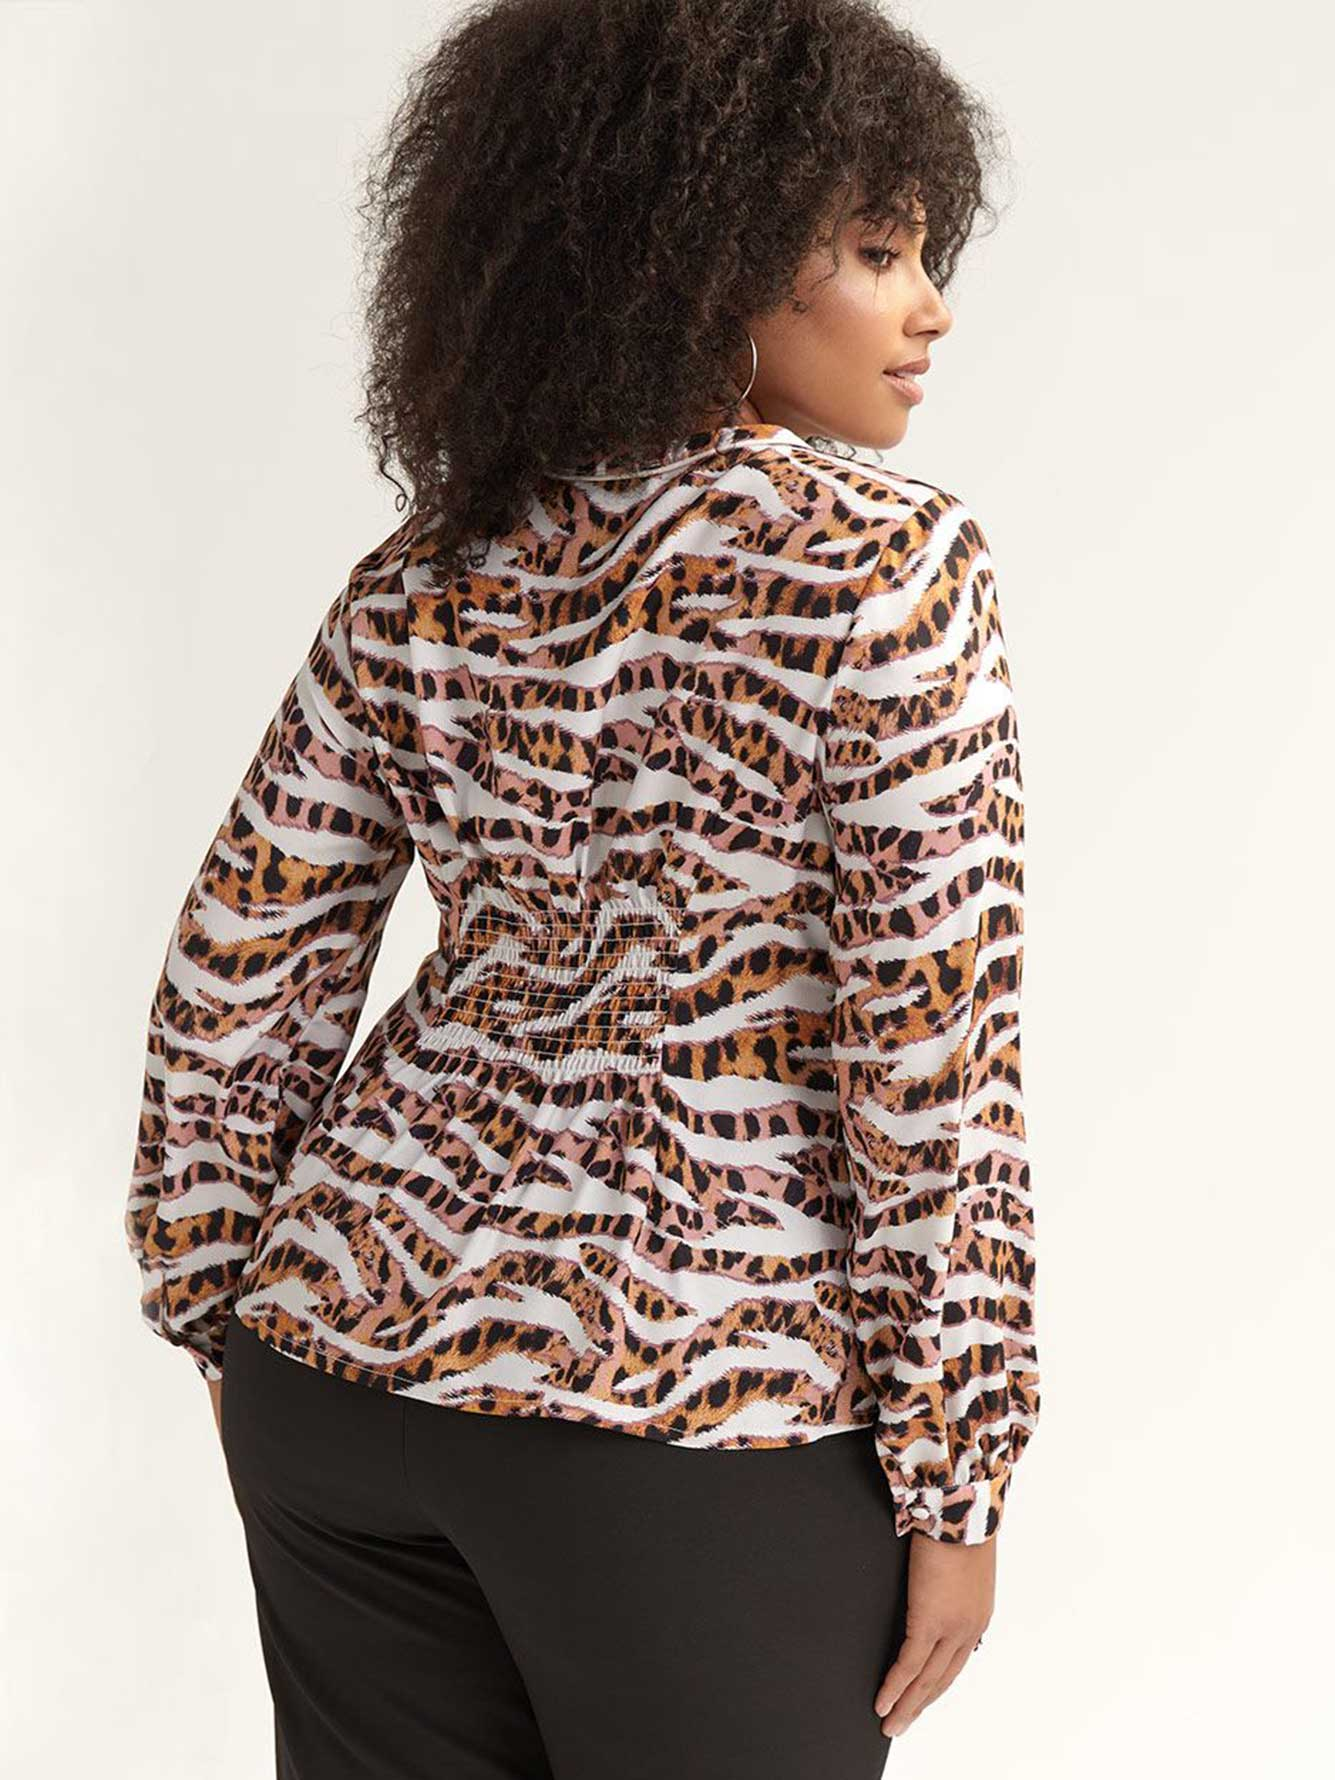 Button-Down Shirt in Striped Leopard Print - Lost Ink